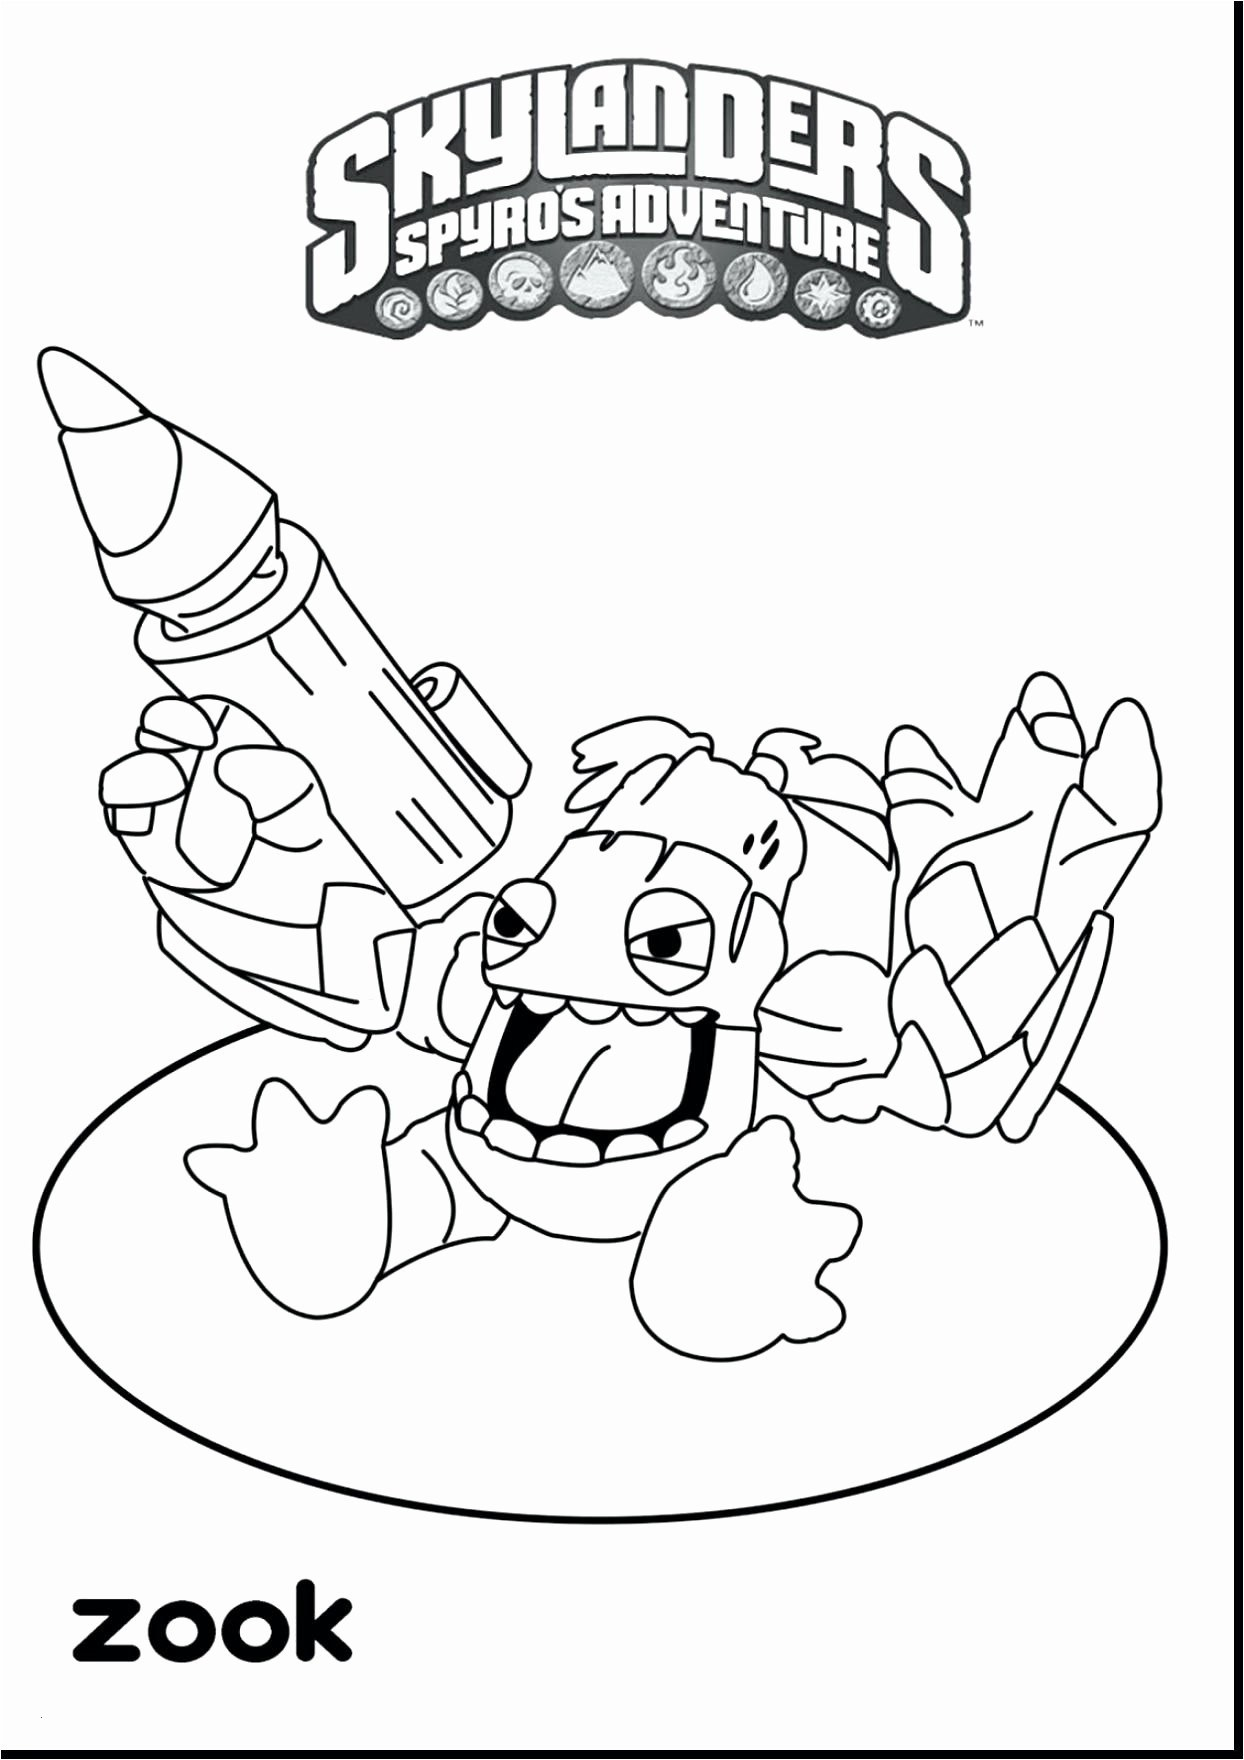 mother day coloring pages to print Collection-Free Mothers Day Coloring Pages Mothers Day Coloring Pages for Preschool 21csb 6-a